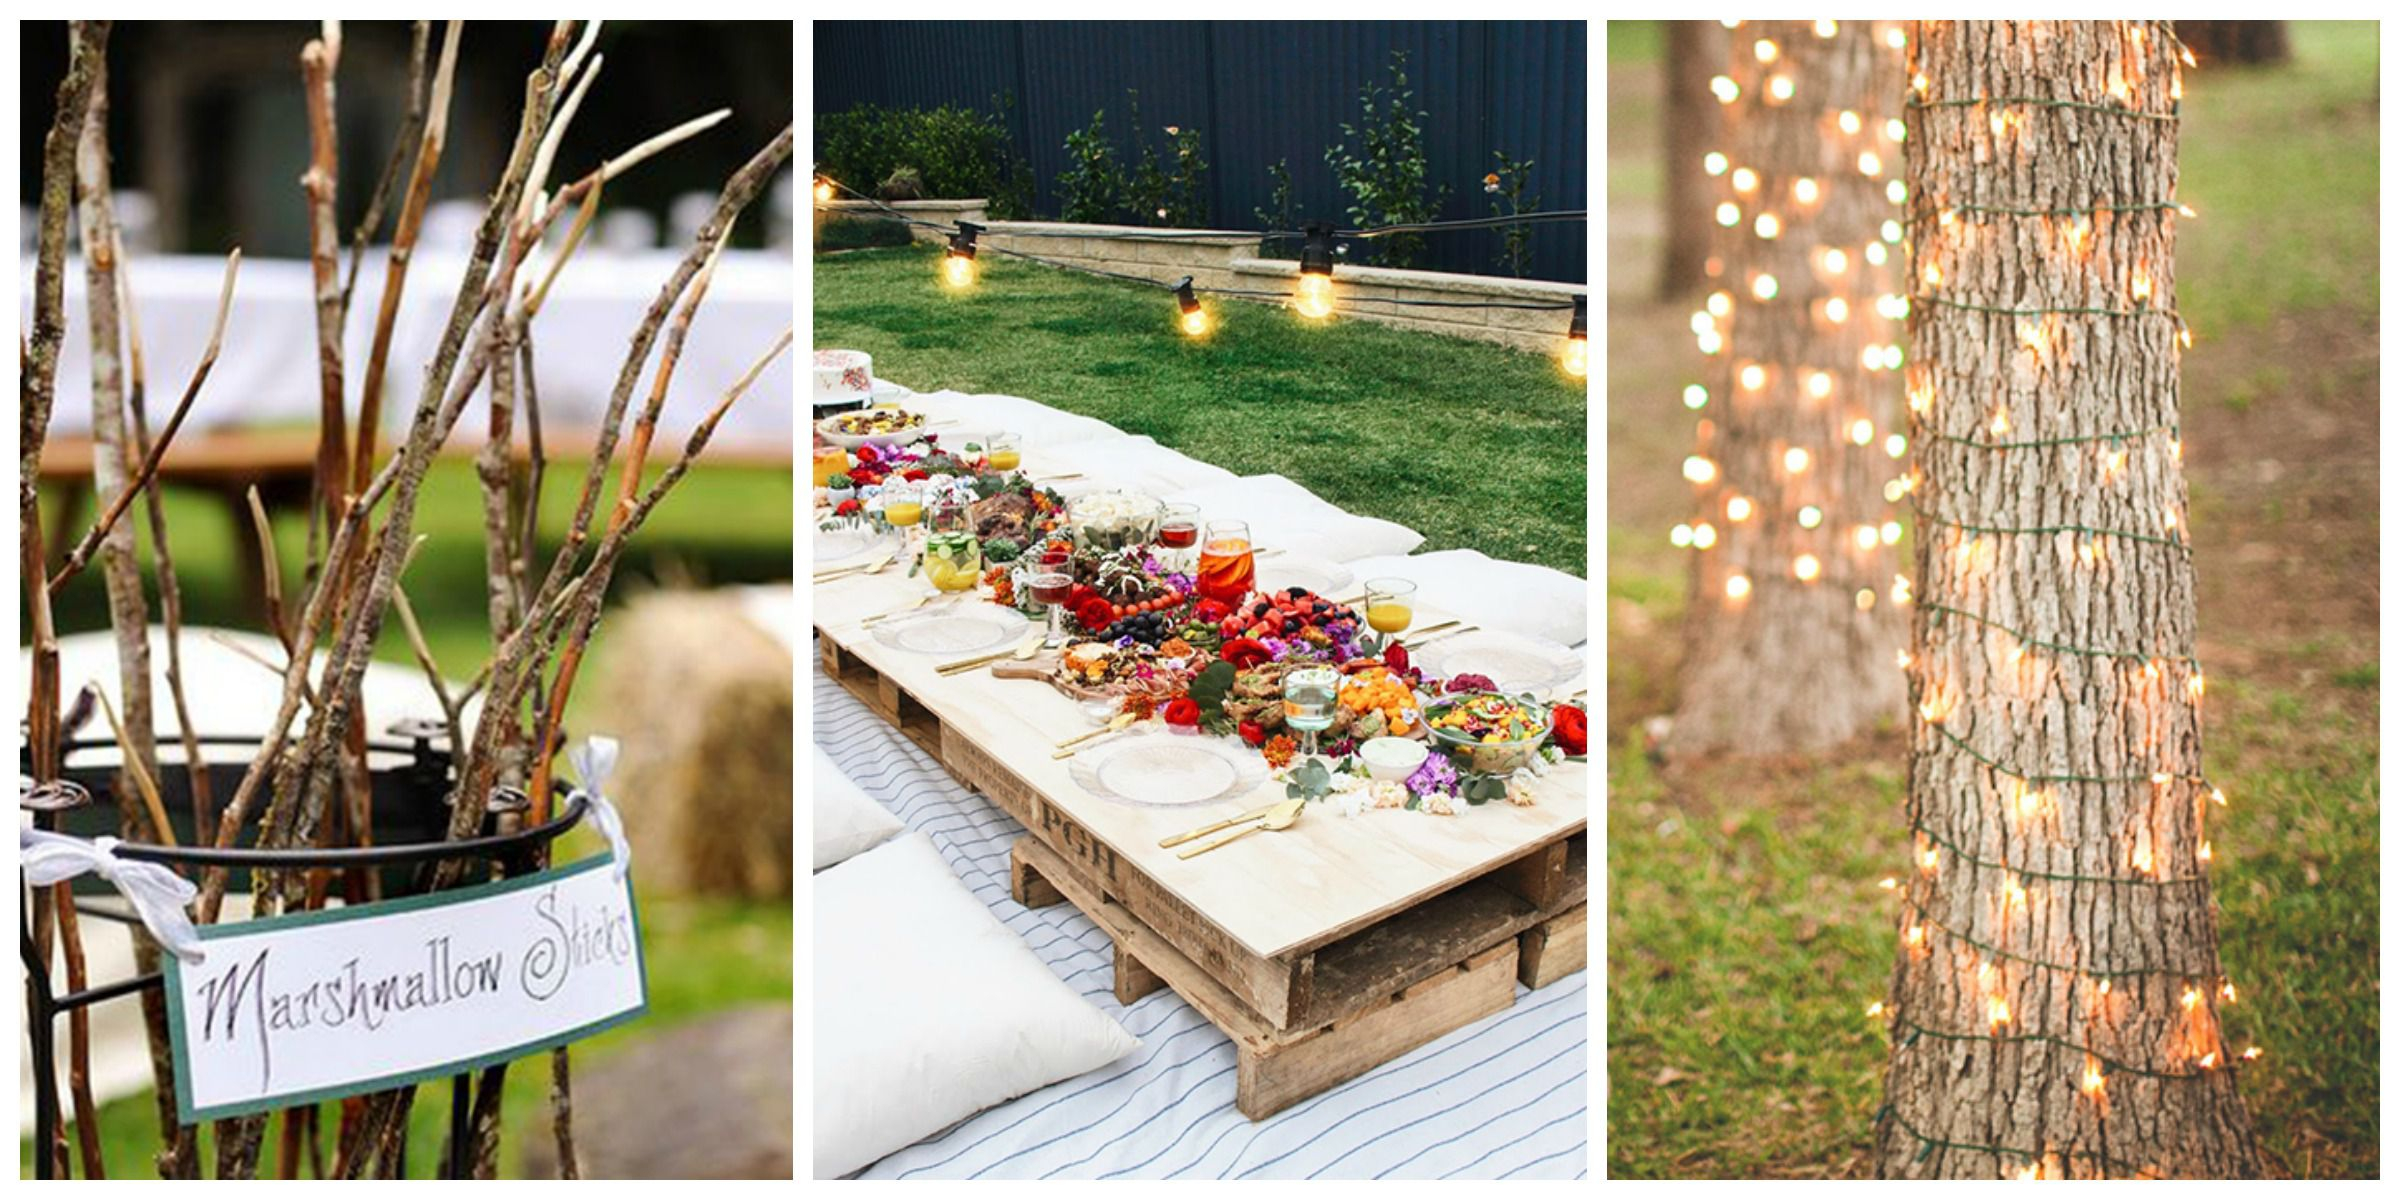 36 Fun Party Ideas For Adults Adult Party Themes Worthy Of Instagram within 14 Some of the Coolest Ways How to Makeover Backyard Party Decoration Ideas